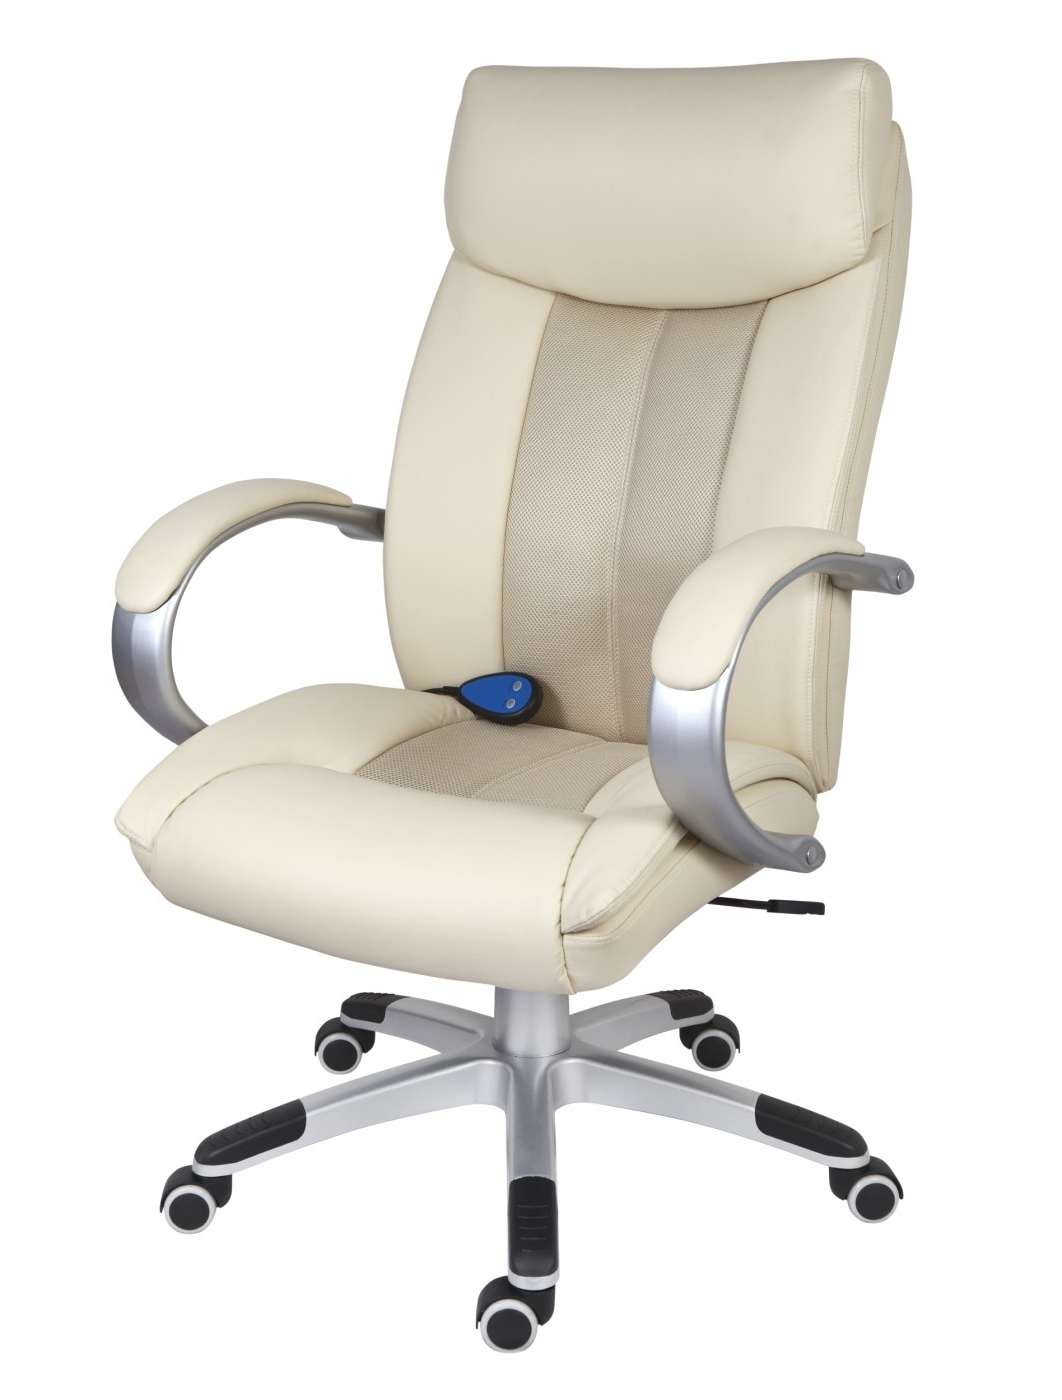 121 Office Furniture Pertaining To Newest Executive Office Chairs With Shiatsu Massager (Gallery 10 of 20)